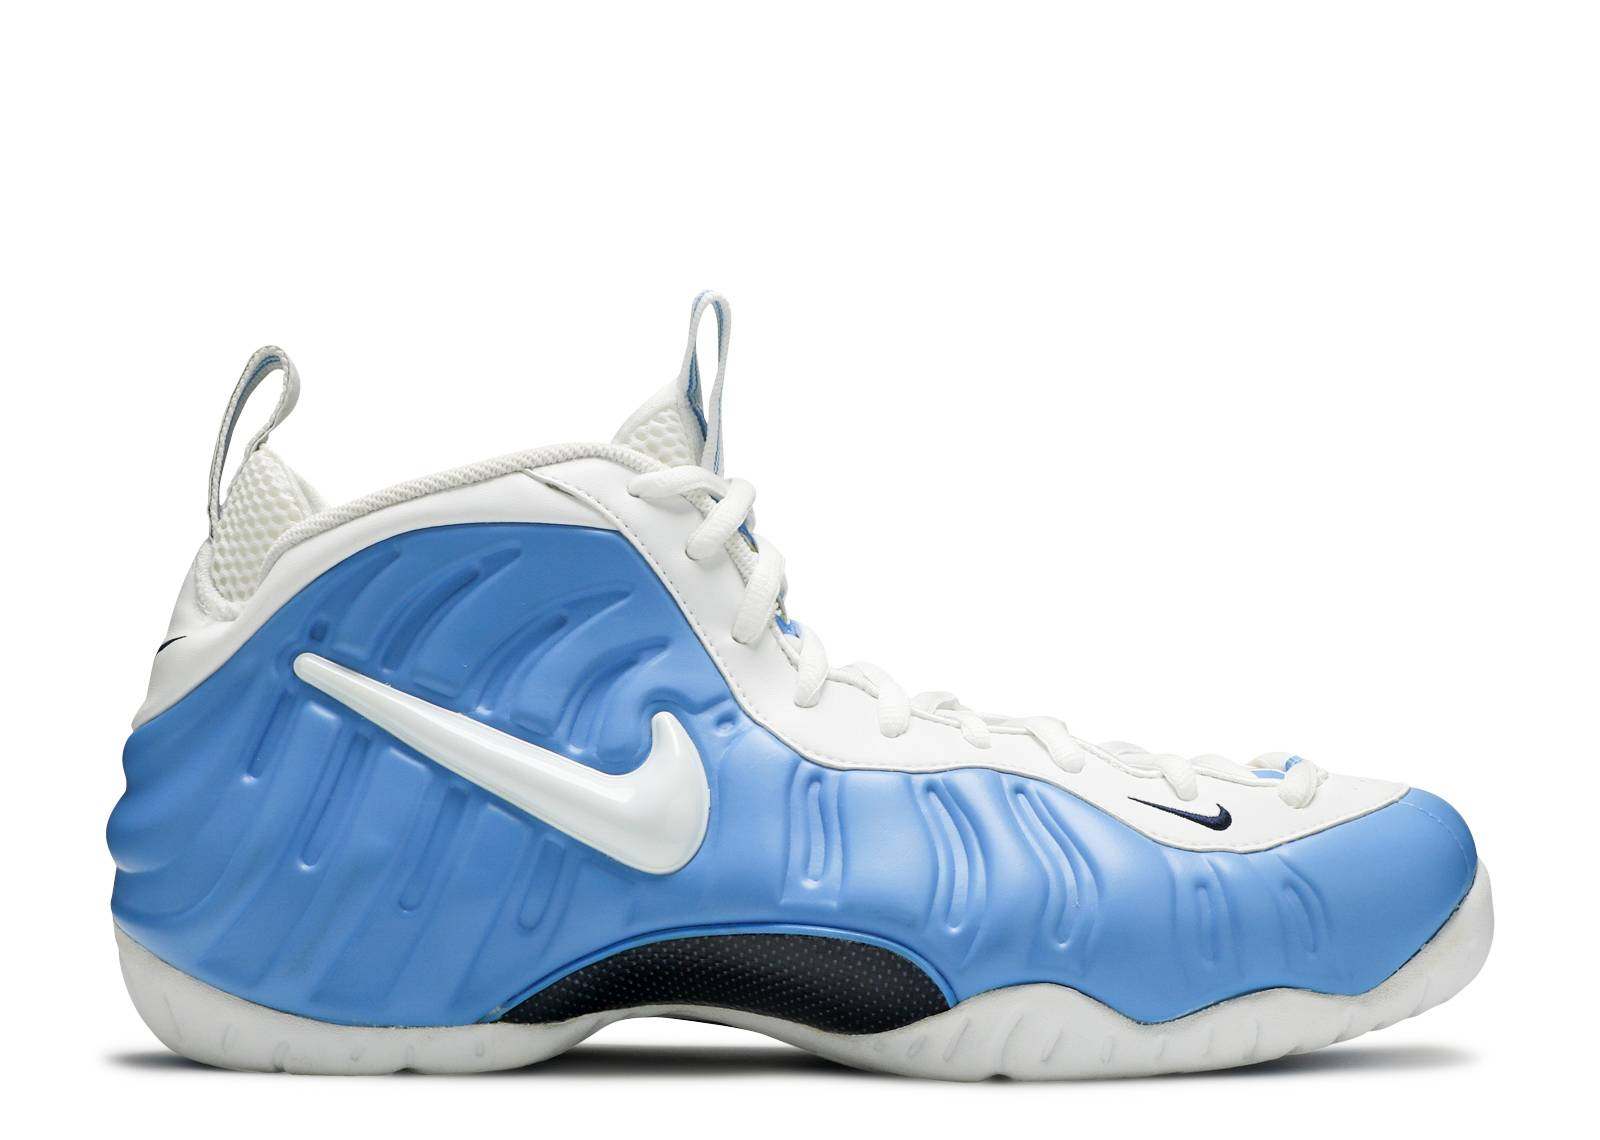 timeless design 6a09c f5c5f air foamposite pro